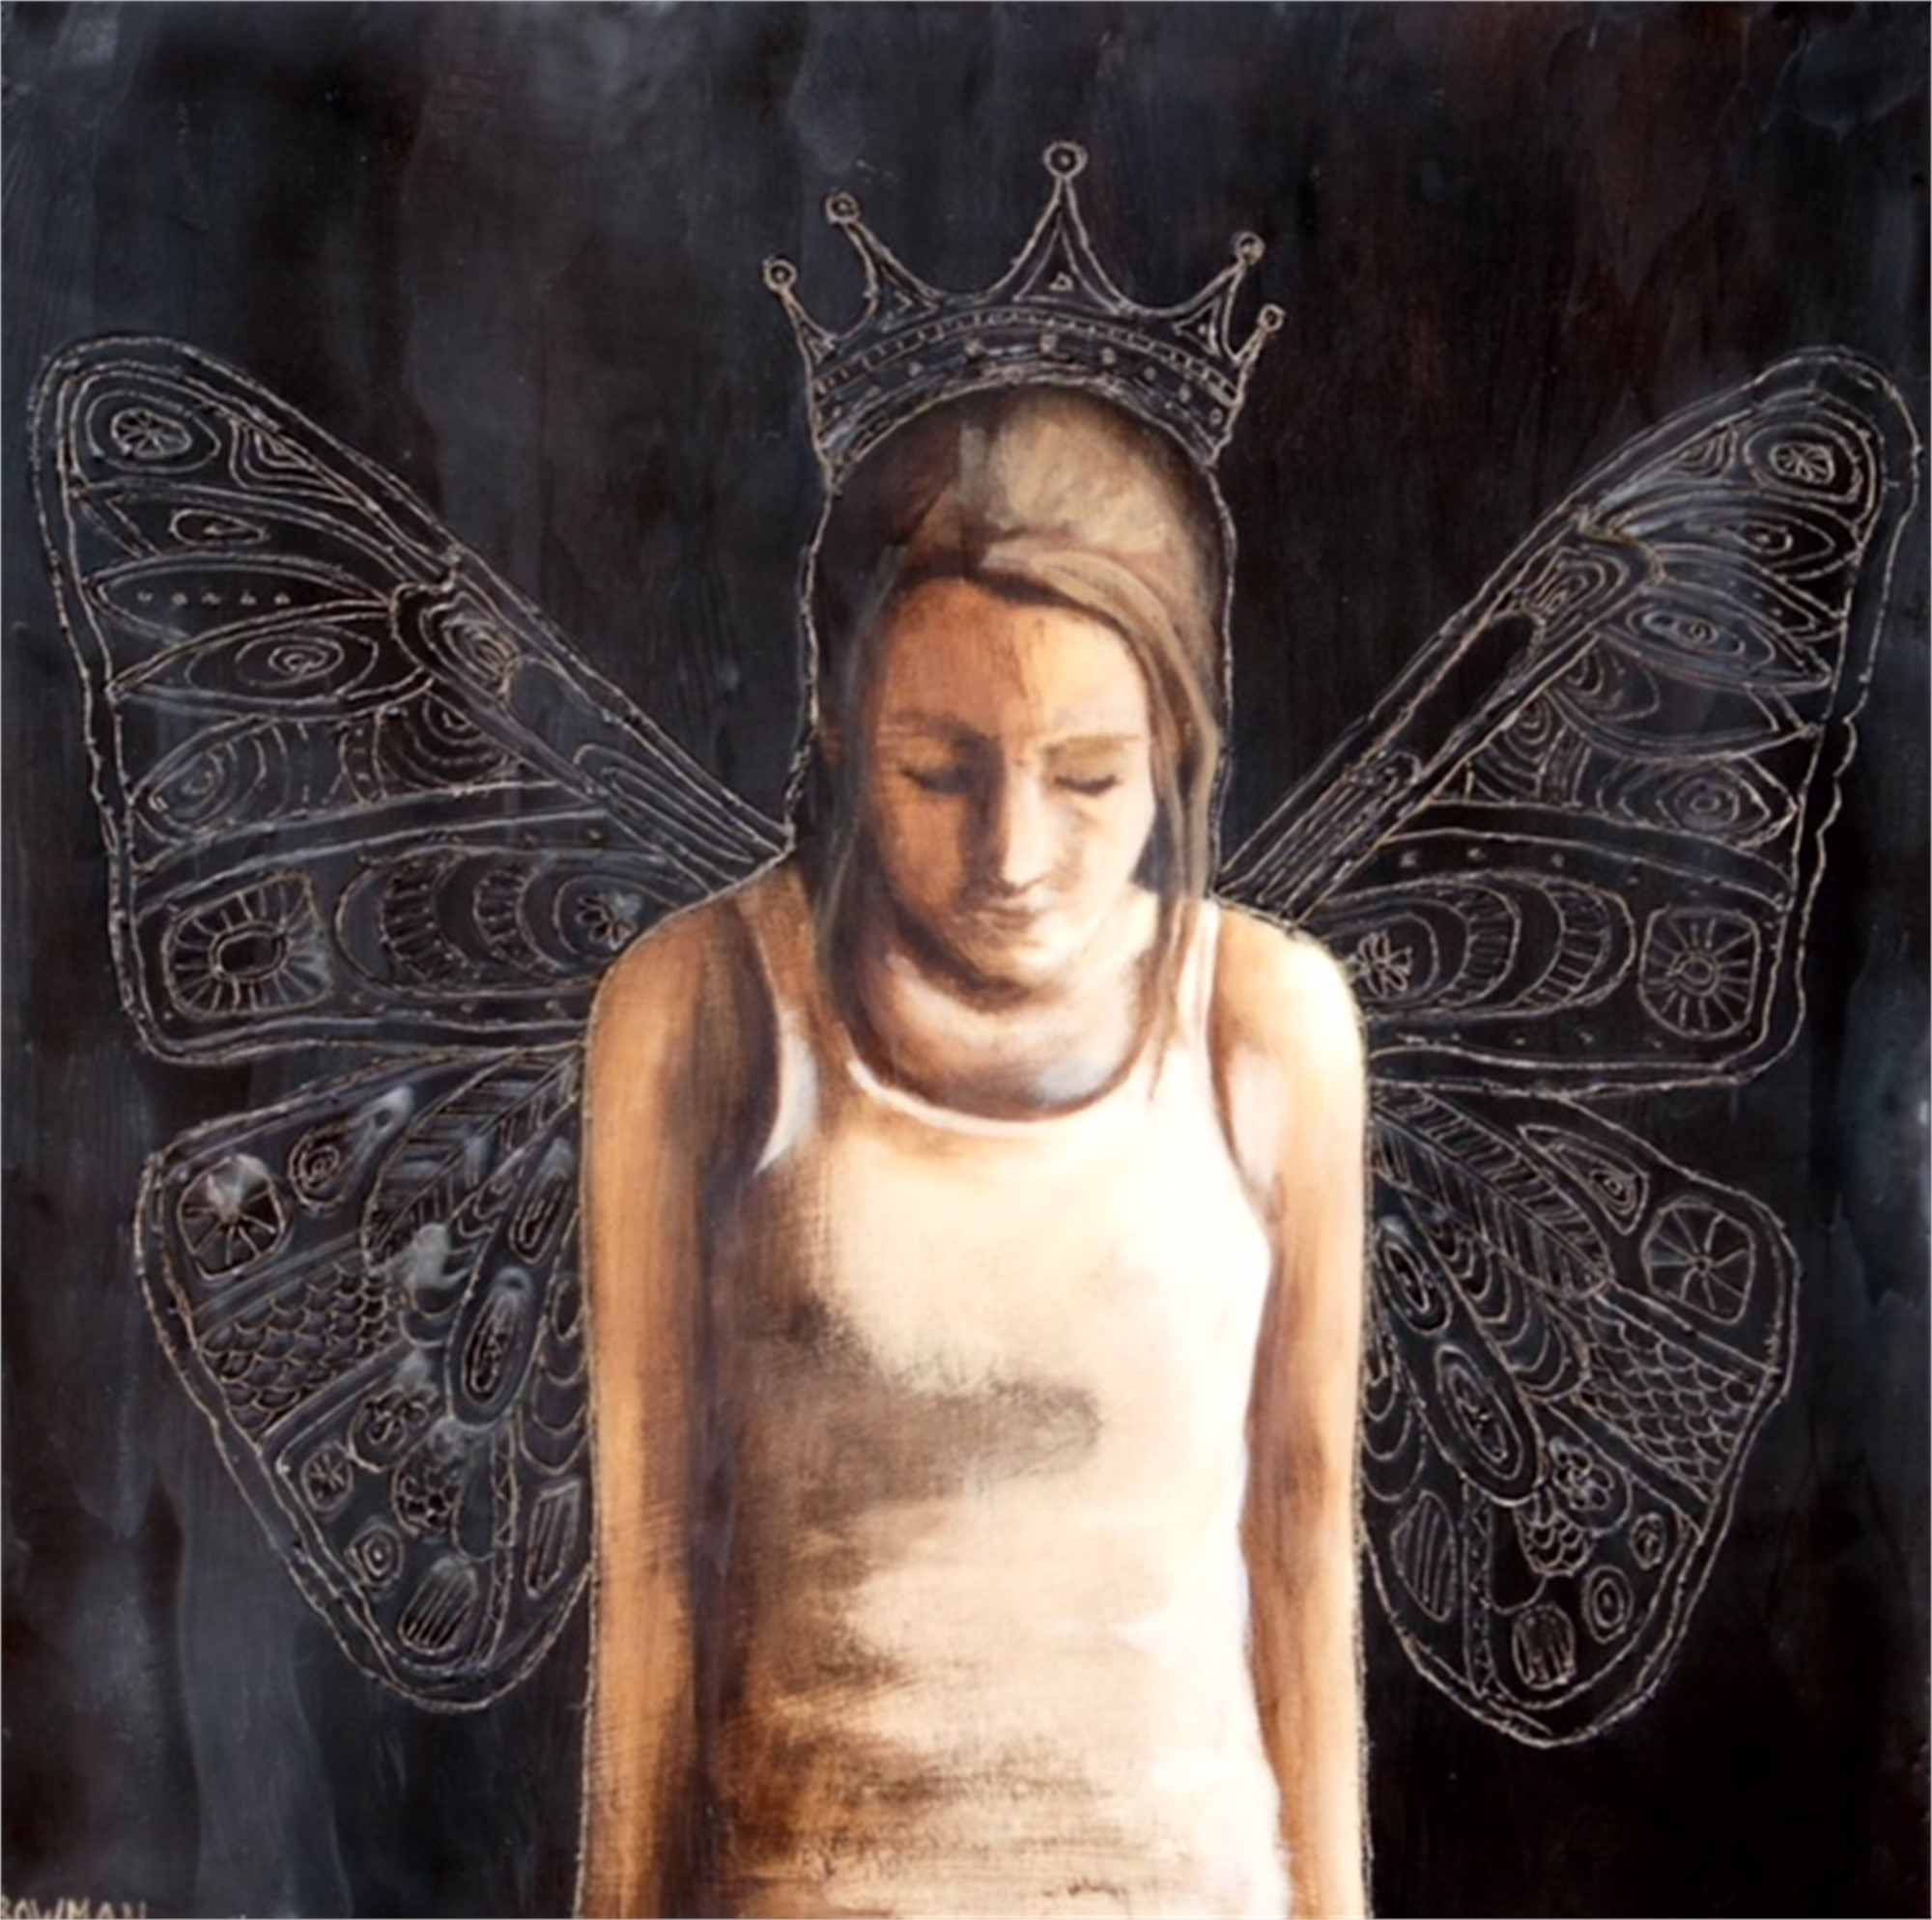 In My Dreams I am Queen of the Butterflies, 2018 by Laura Bowman